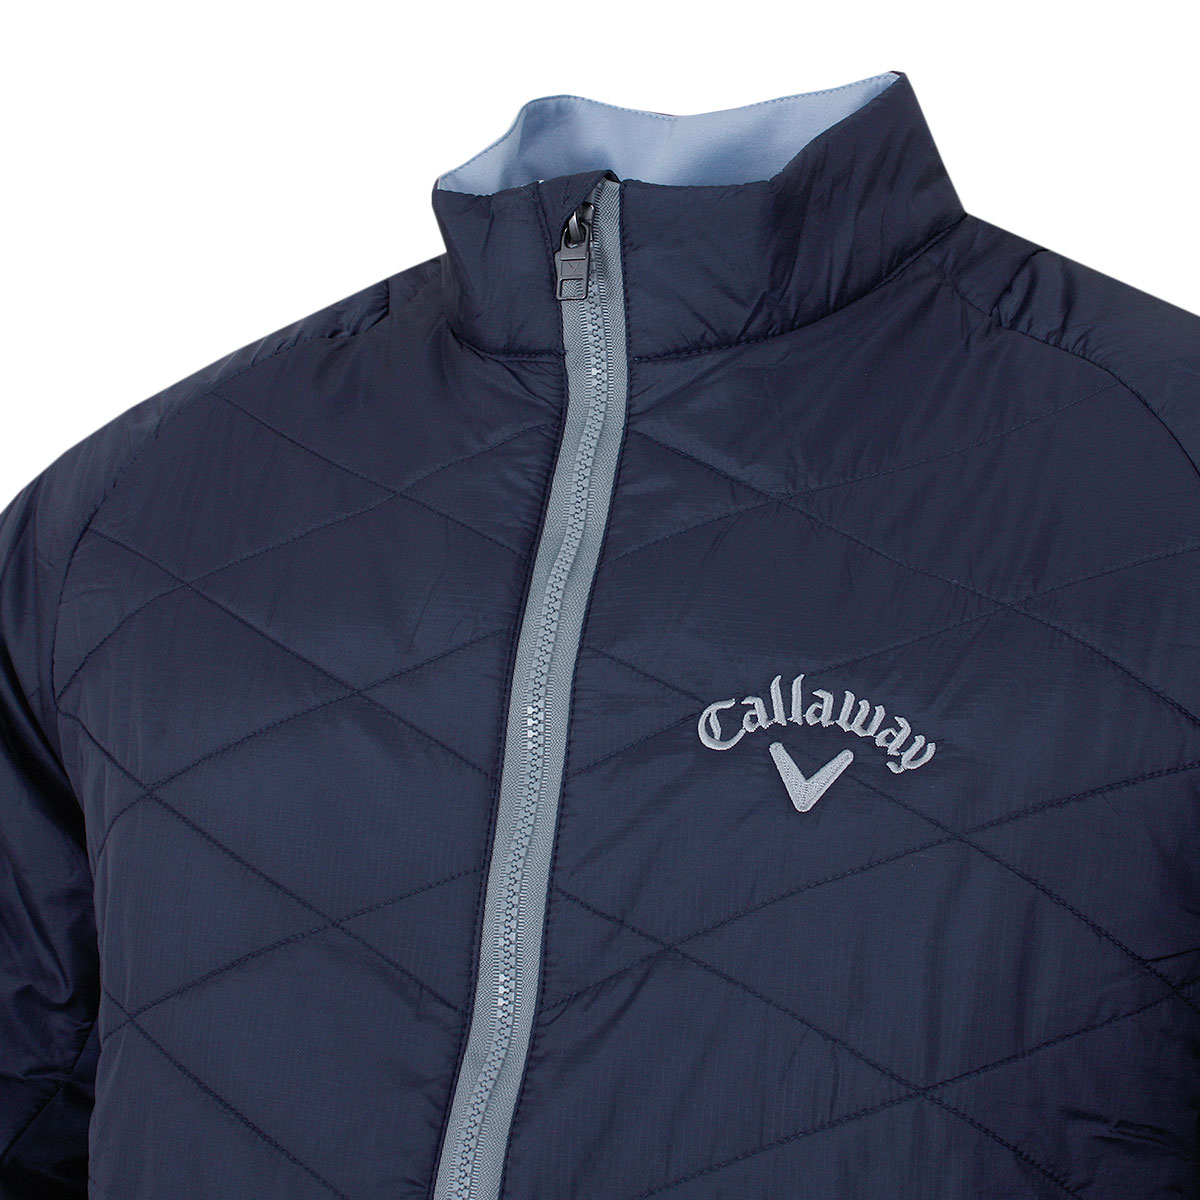 Callaway-Golf-Mens-Performance-Stretch-Quilted-Padded-Jacket-29-OFF-RRP thumbnail 8